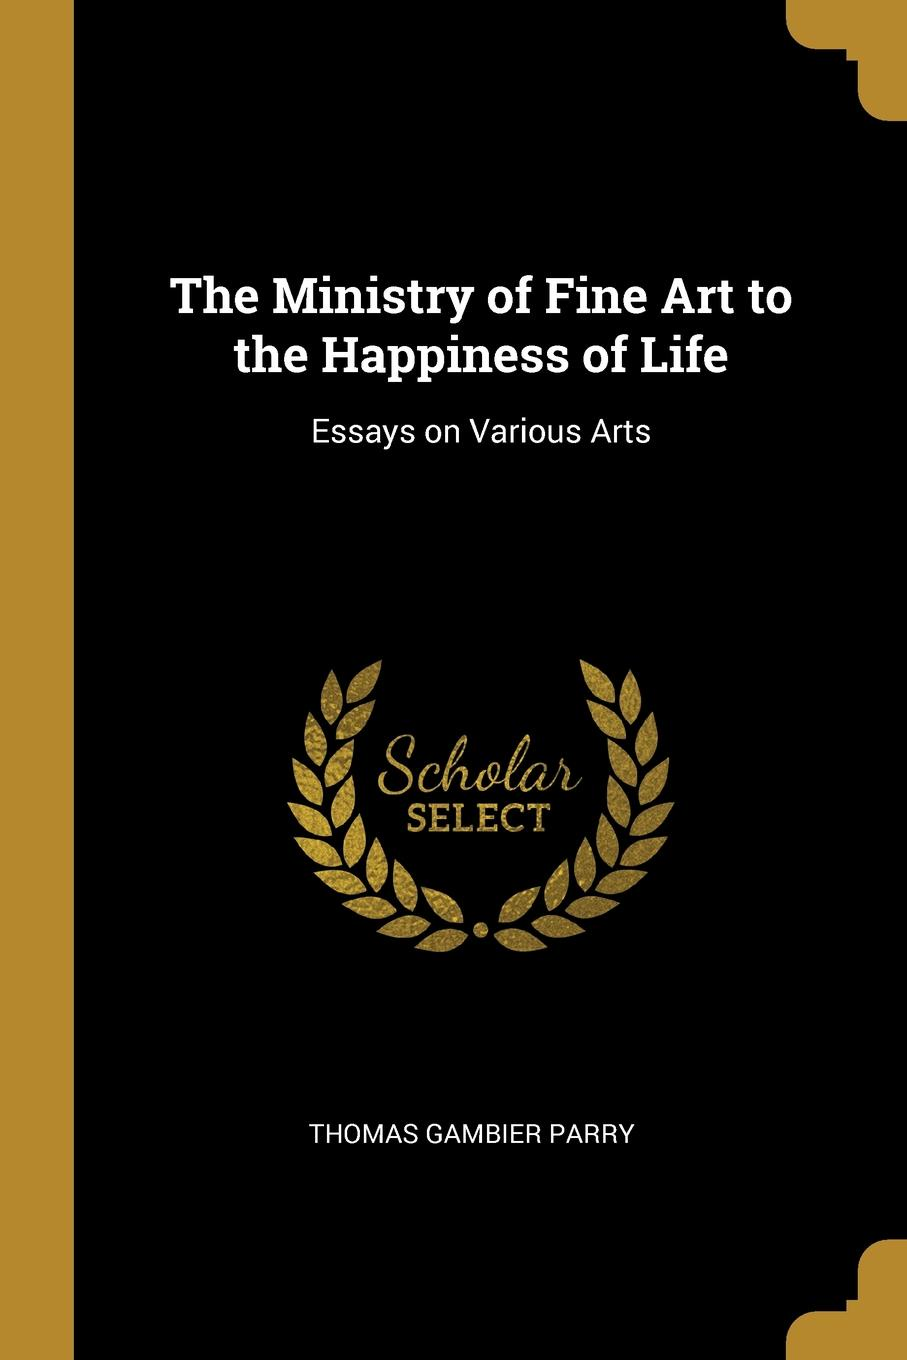 Thomas Gambier Parry The Ministry of Fine Art to the Happiness Life. Essays on Various Arts